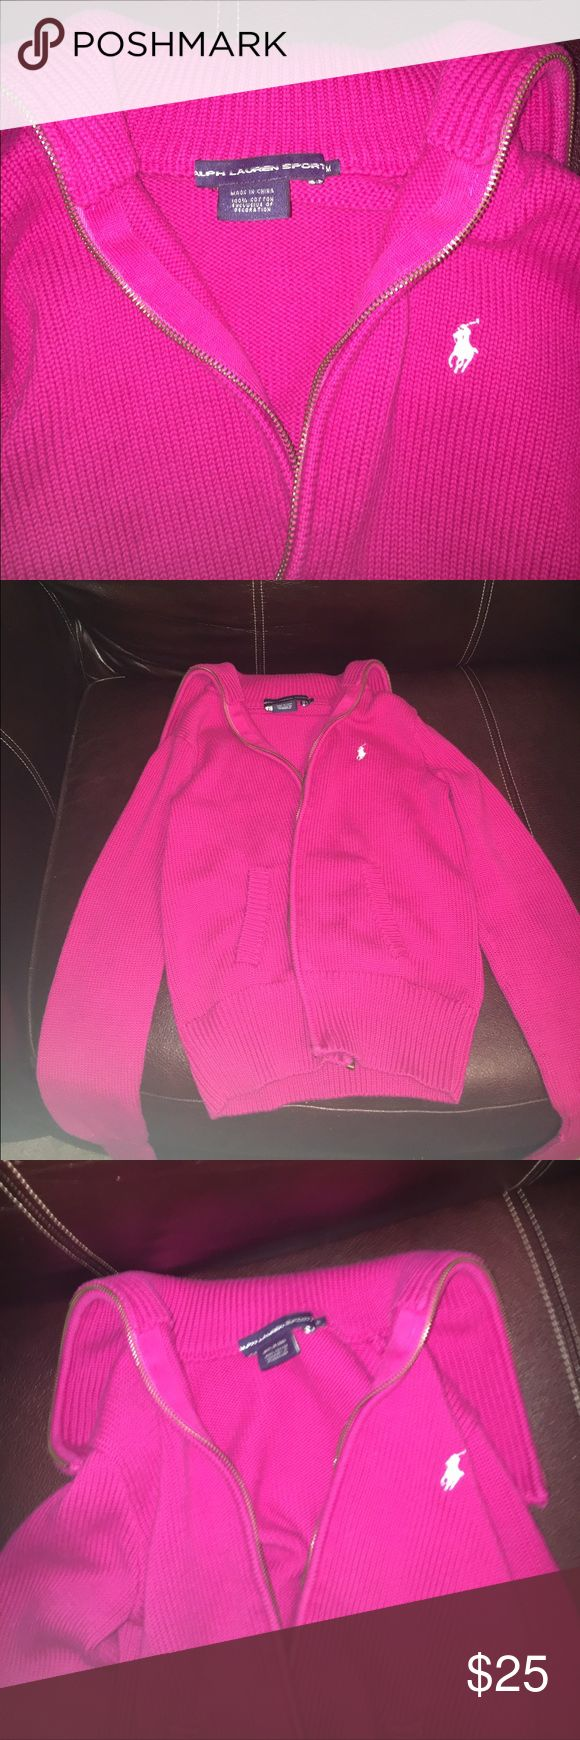 Polo jacket Hot pink polo jacket. Super cute and super warm. Size medium Polo by Ralph Lauren Jackets & Coats